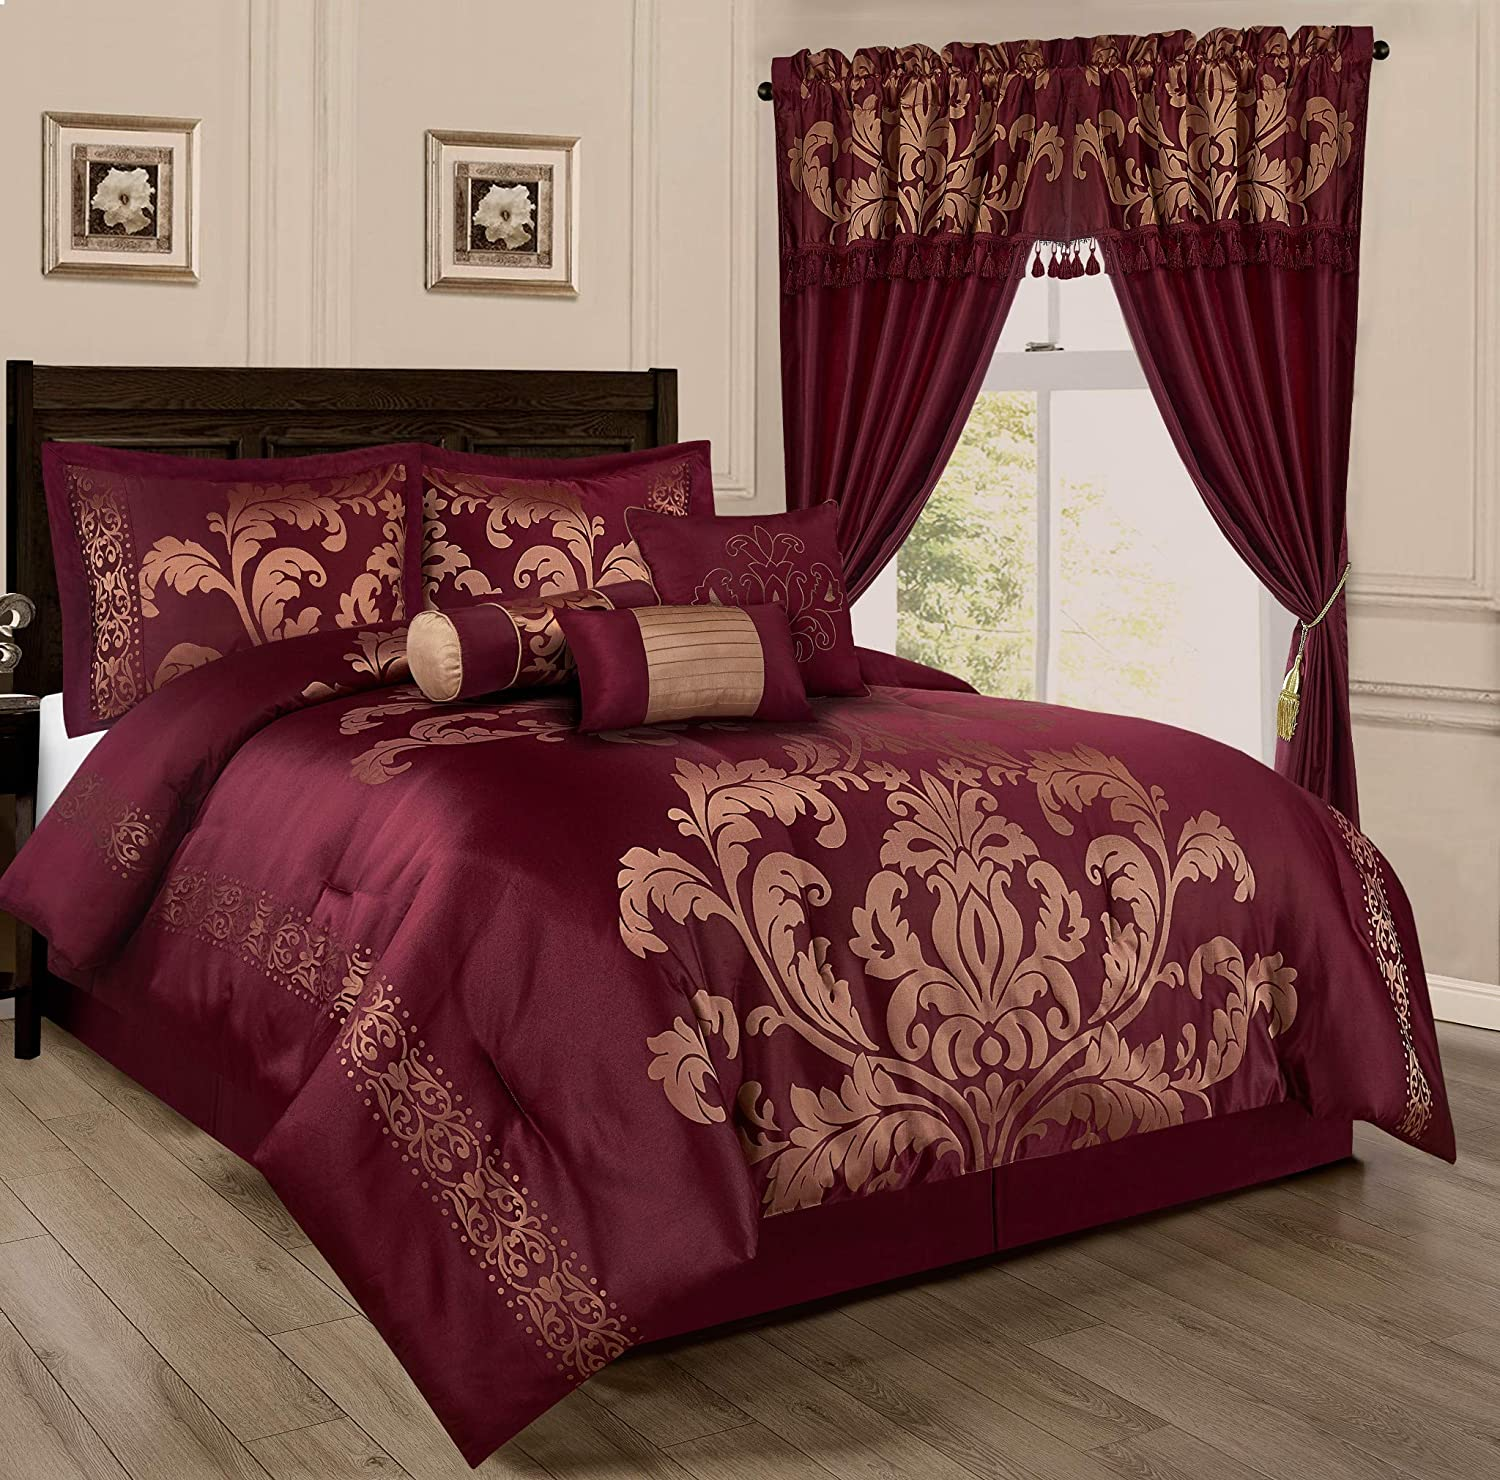 Chezmoi Collection Royale 7-Piece Jacquard Floral Comforter Set